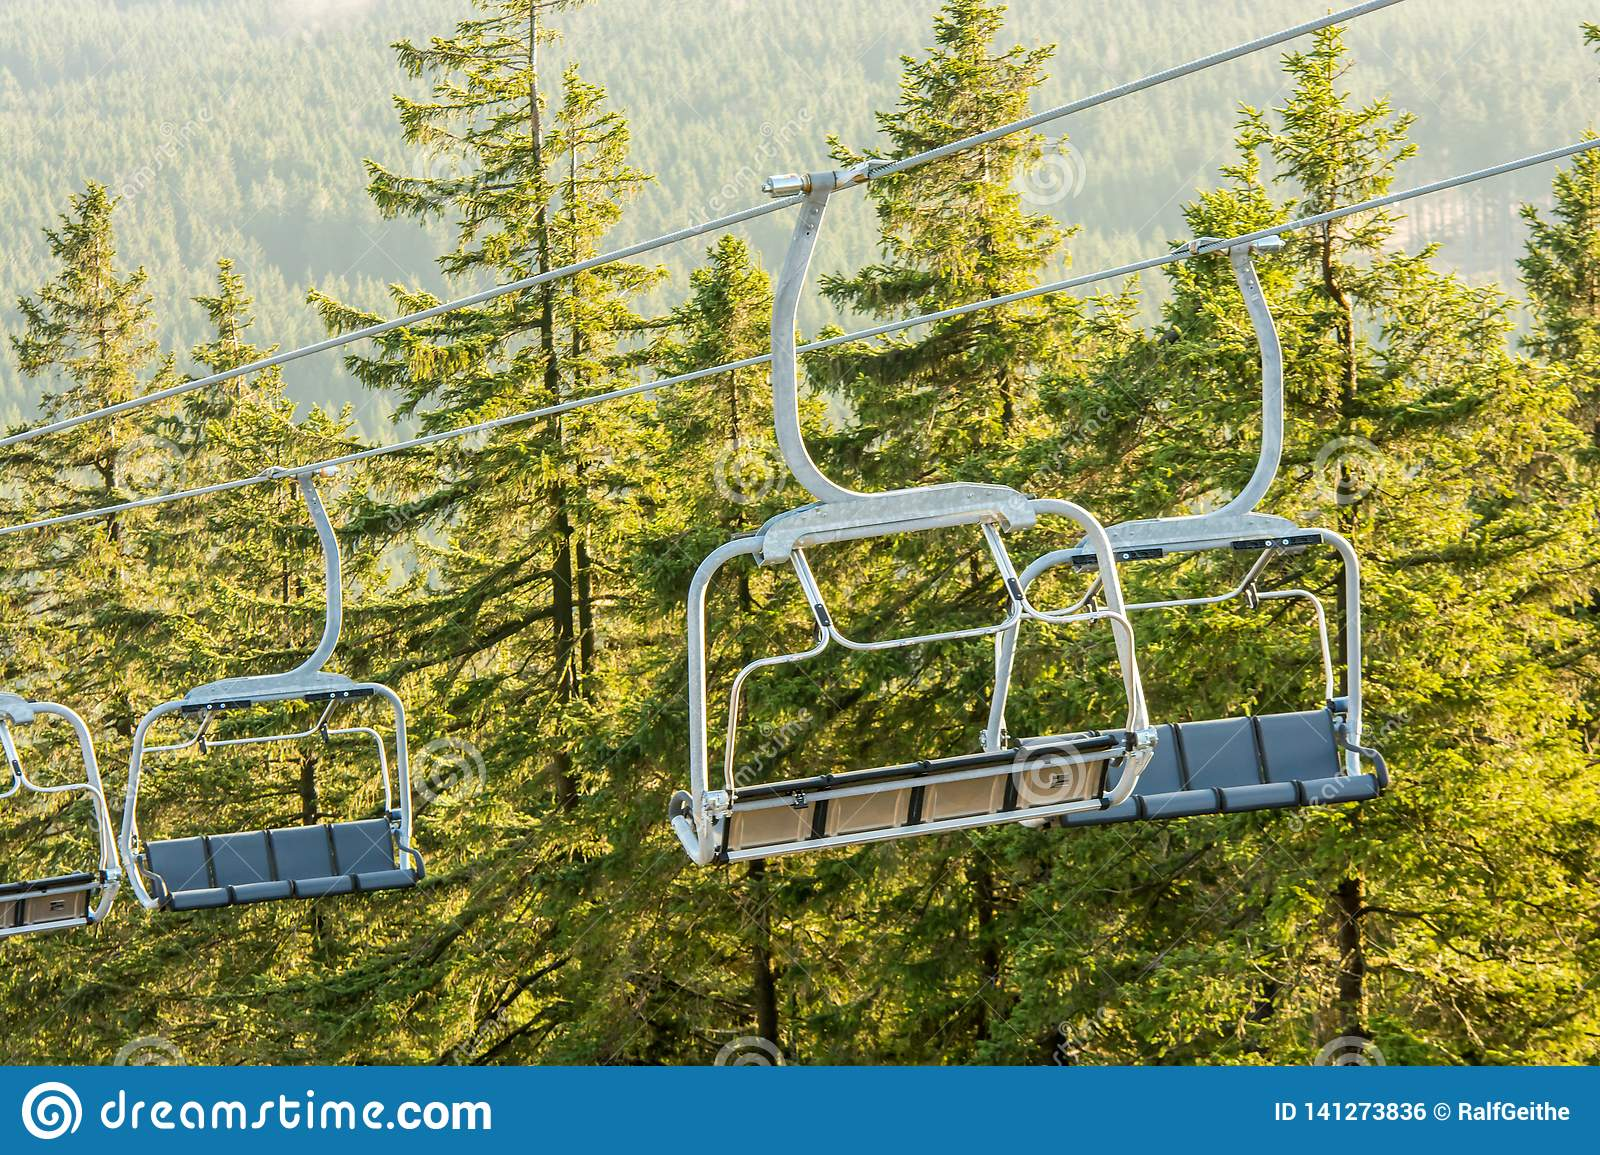 Empty chairlift with big gondolas in a forest area